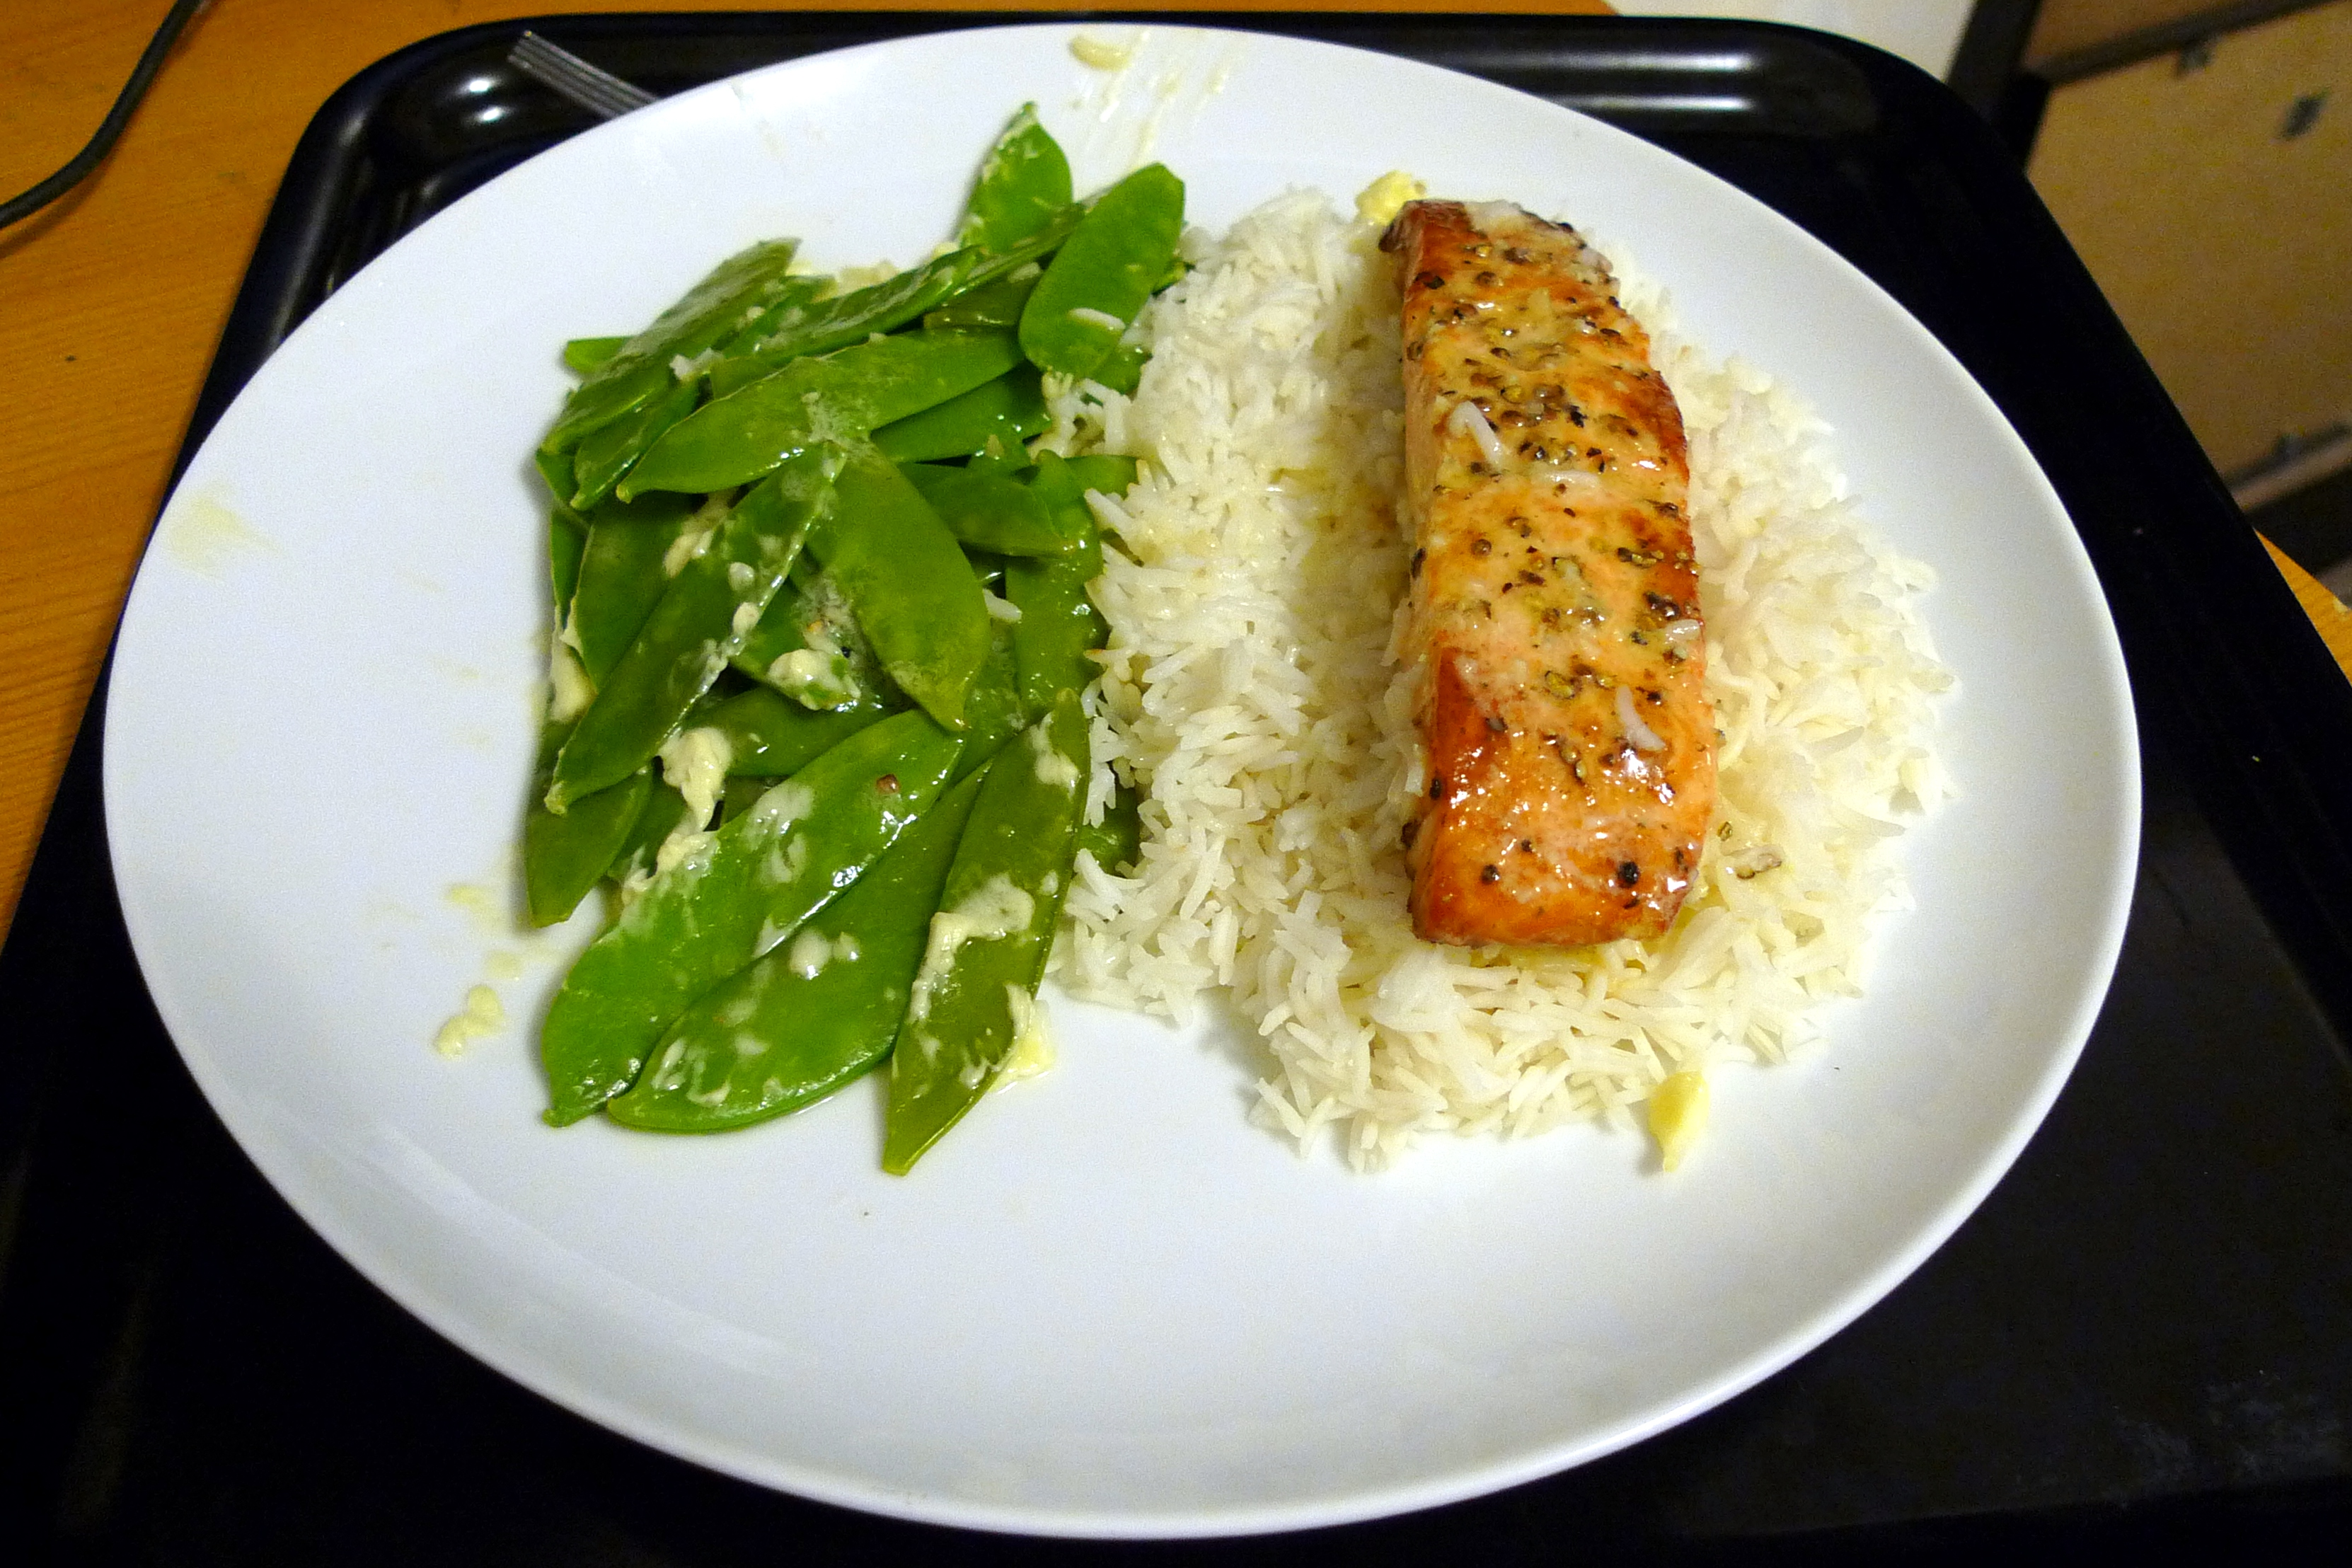 http://upload.wikimedia.org/wikipedia/commons/e/eb/Salmon_with_Lime_%26_Garlic_Butter_(4437041010).jpg